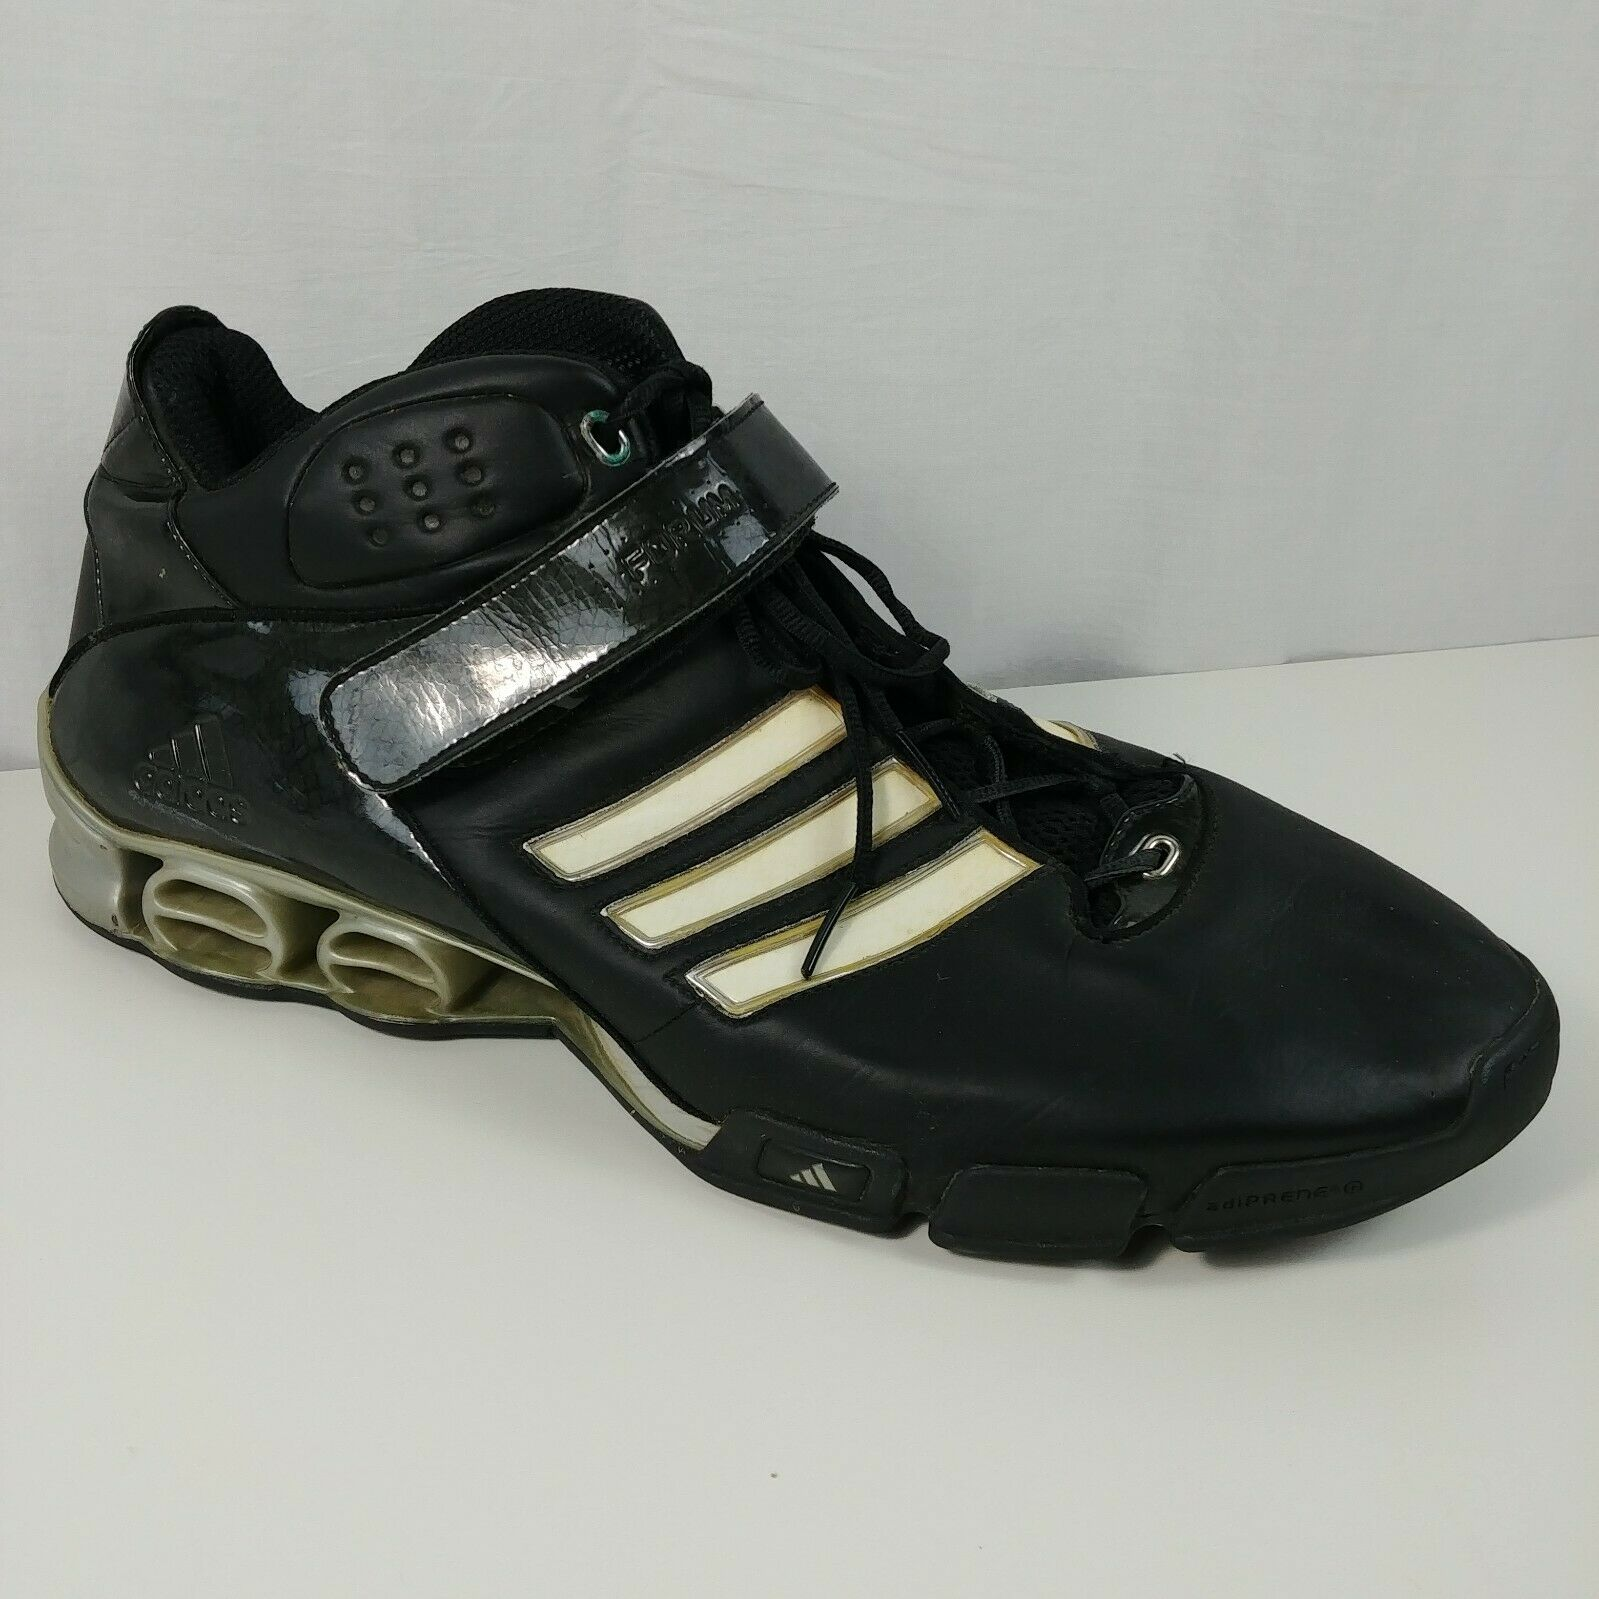 bbcb60a6a1d Adidas Forum A3 Black 809295 Mens Basketball Shoes Size 19 Sneaker – Lot  03